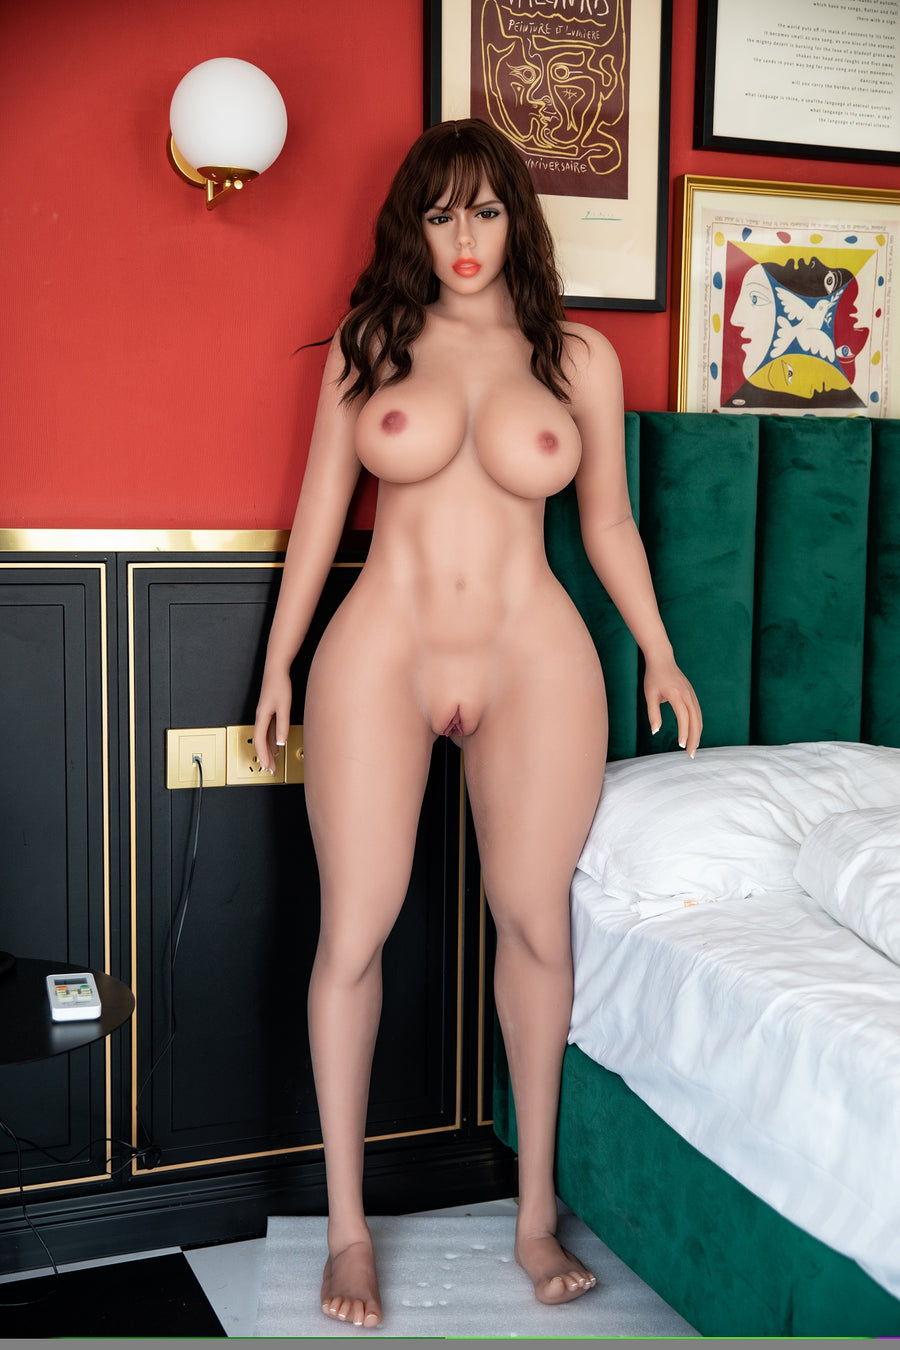 Paris - Huge Super Stimulating Fat Woman Sex Doll 5ft 4 (163cm)